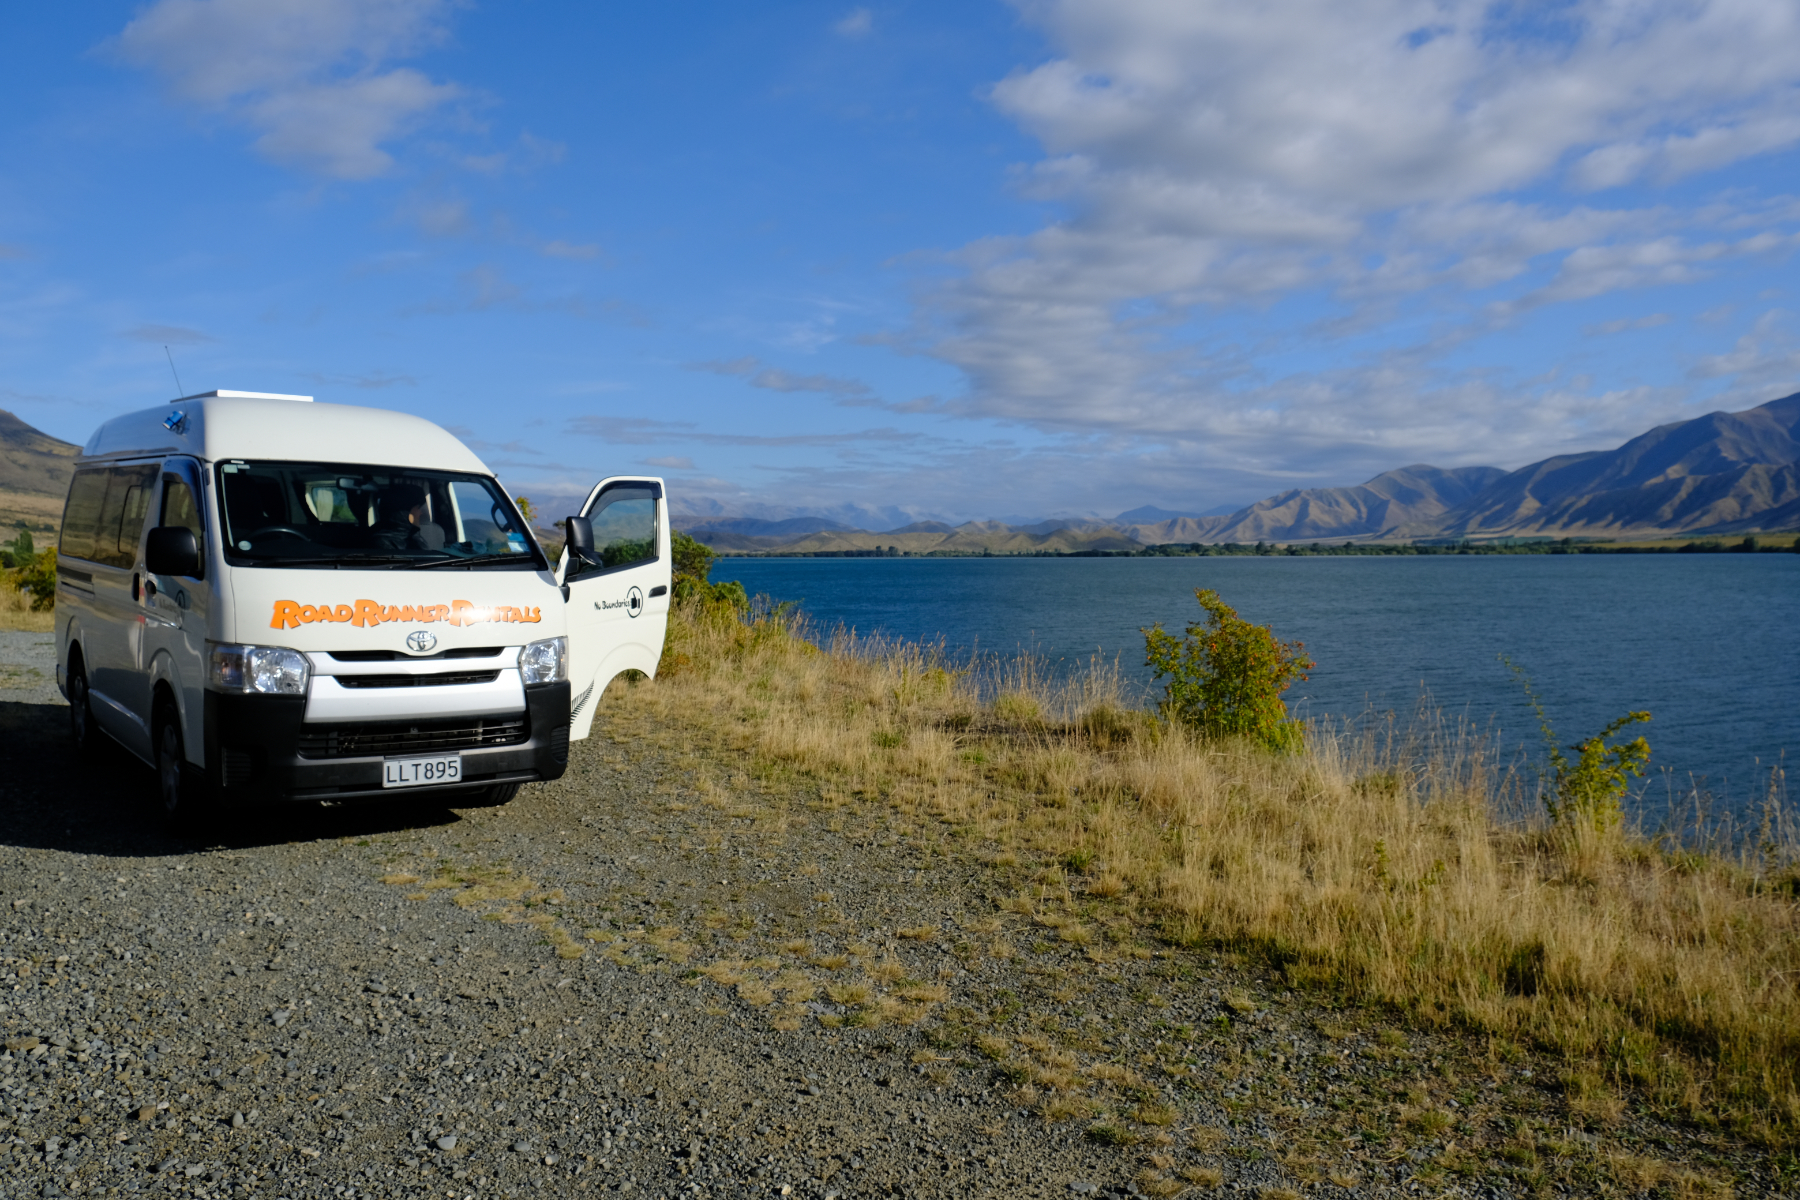 Lake Waitaki